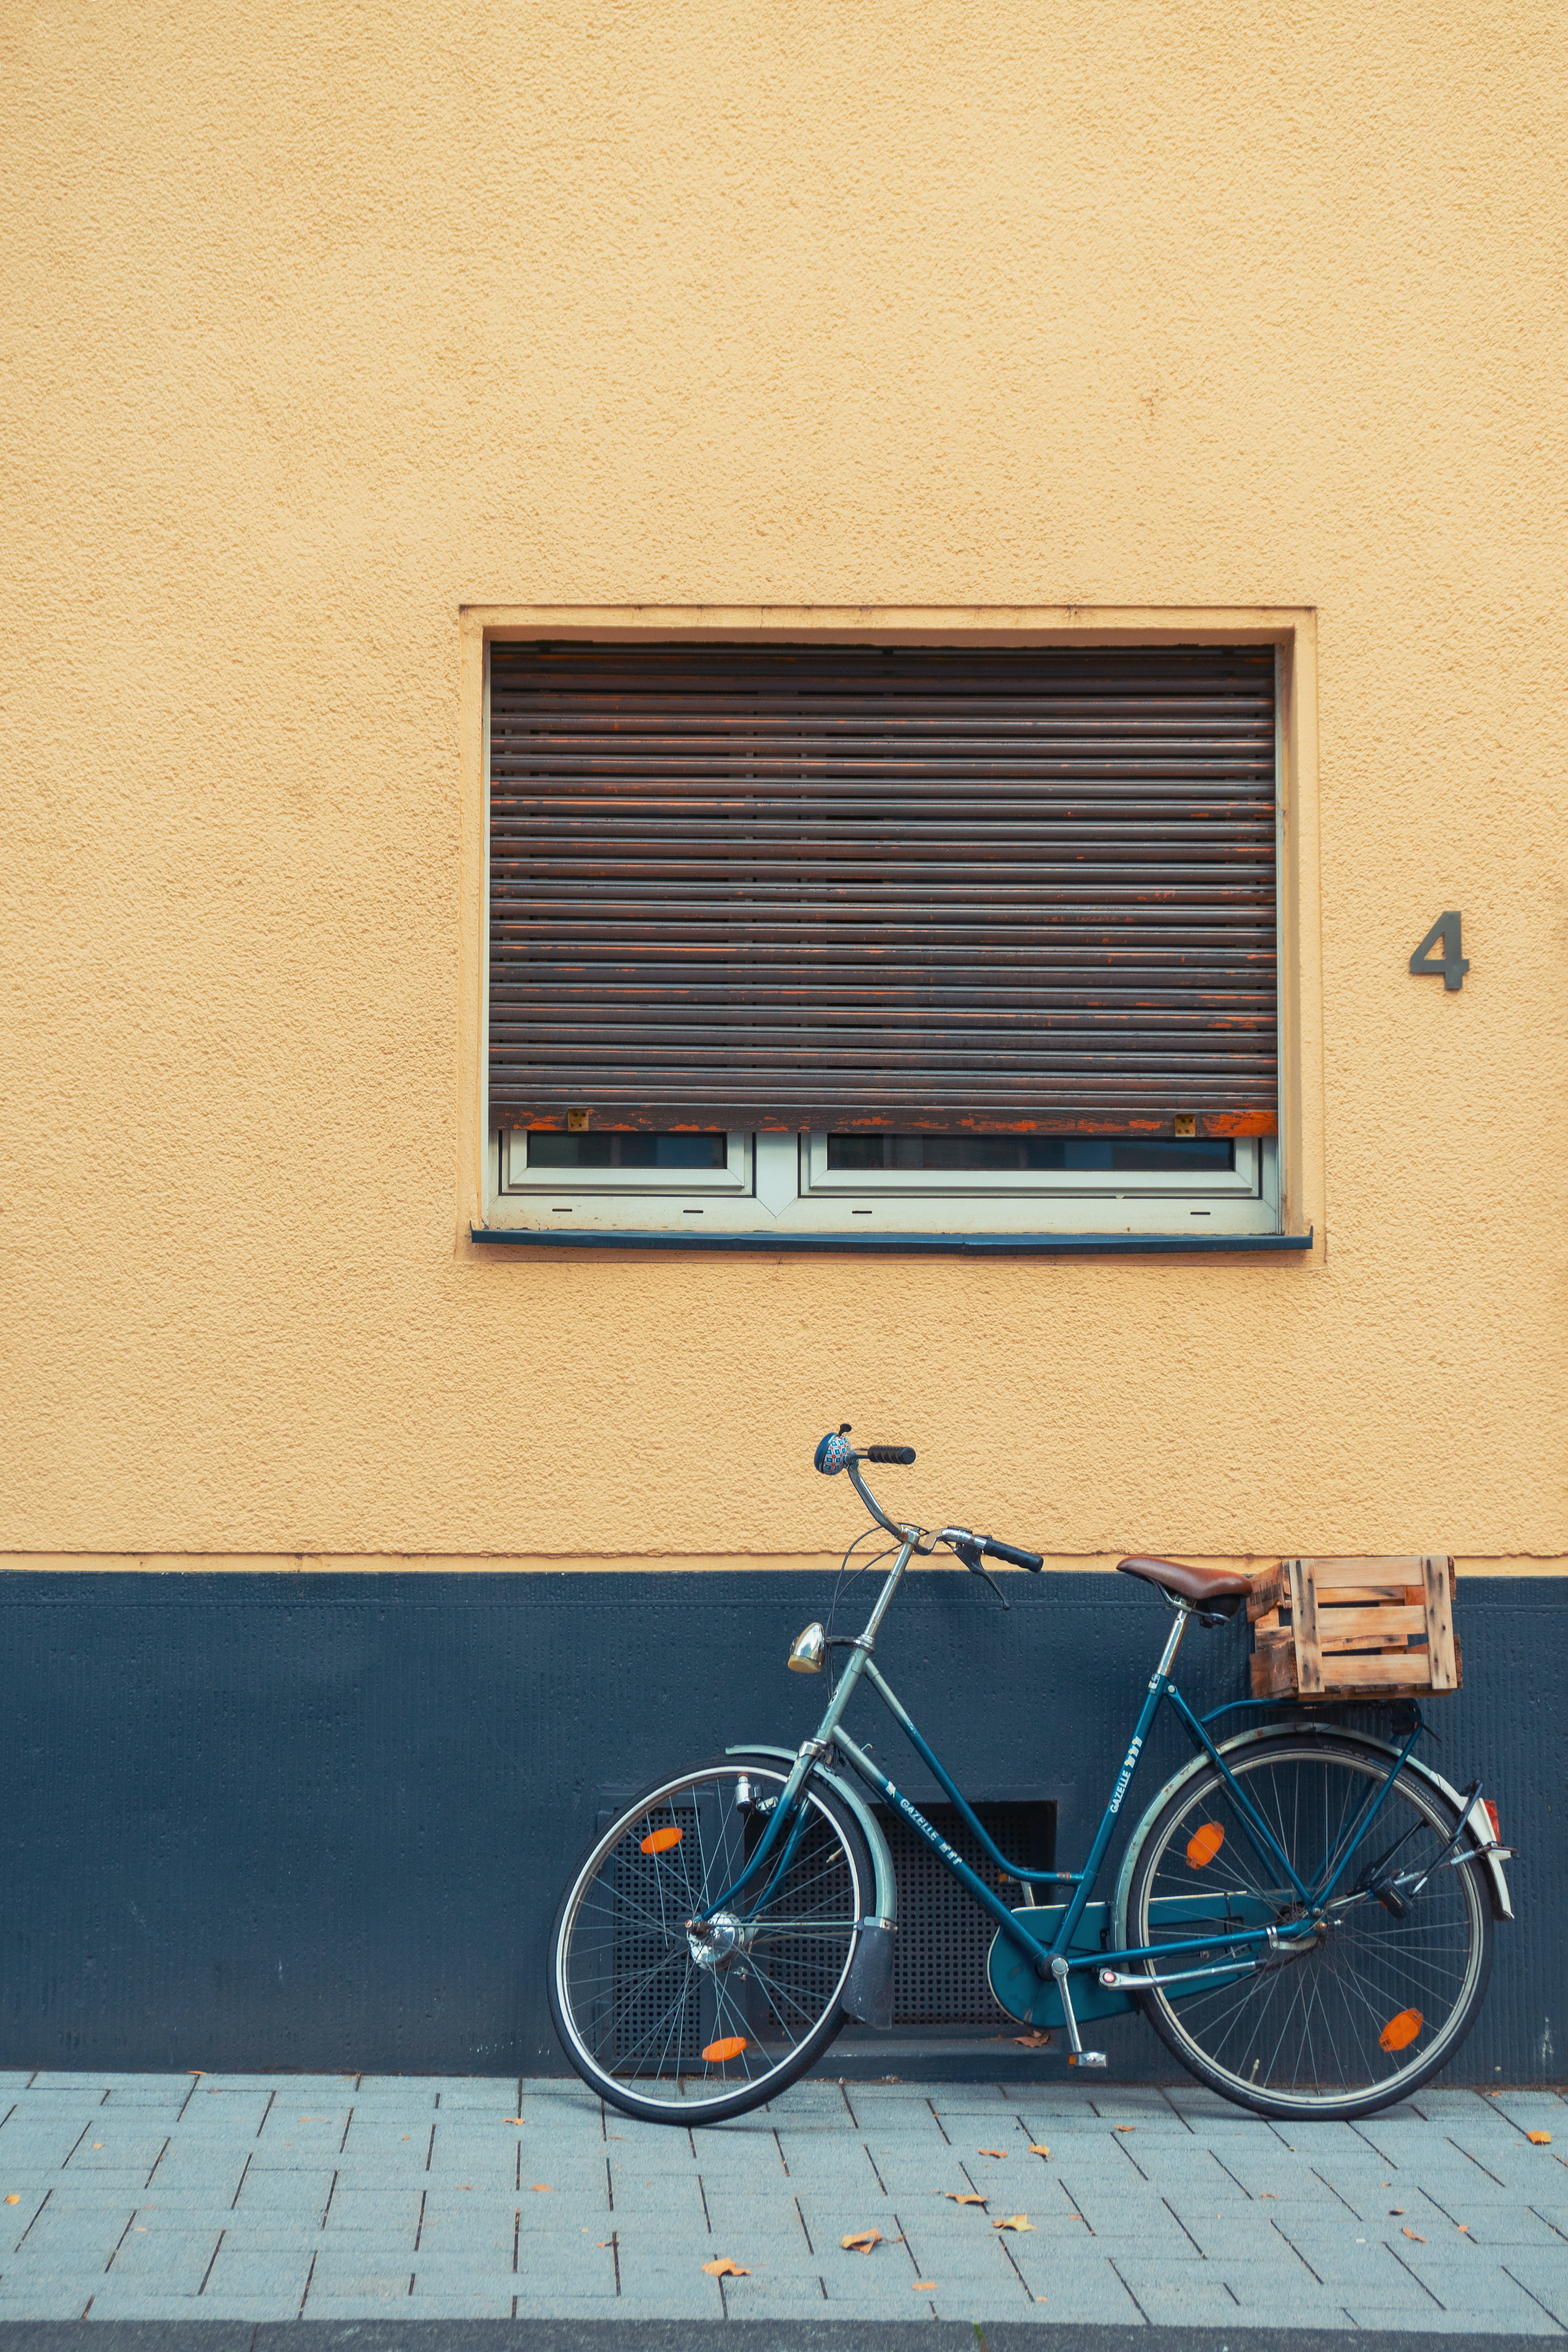 blue step-through bike leaning on wall